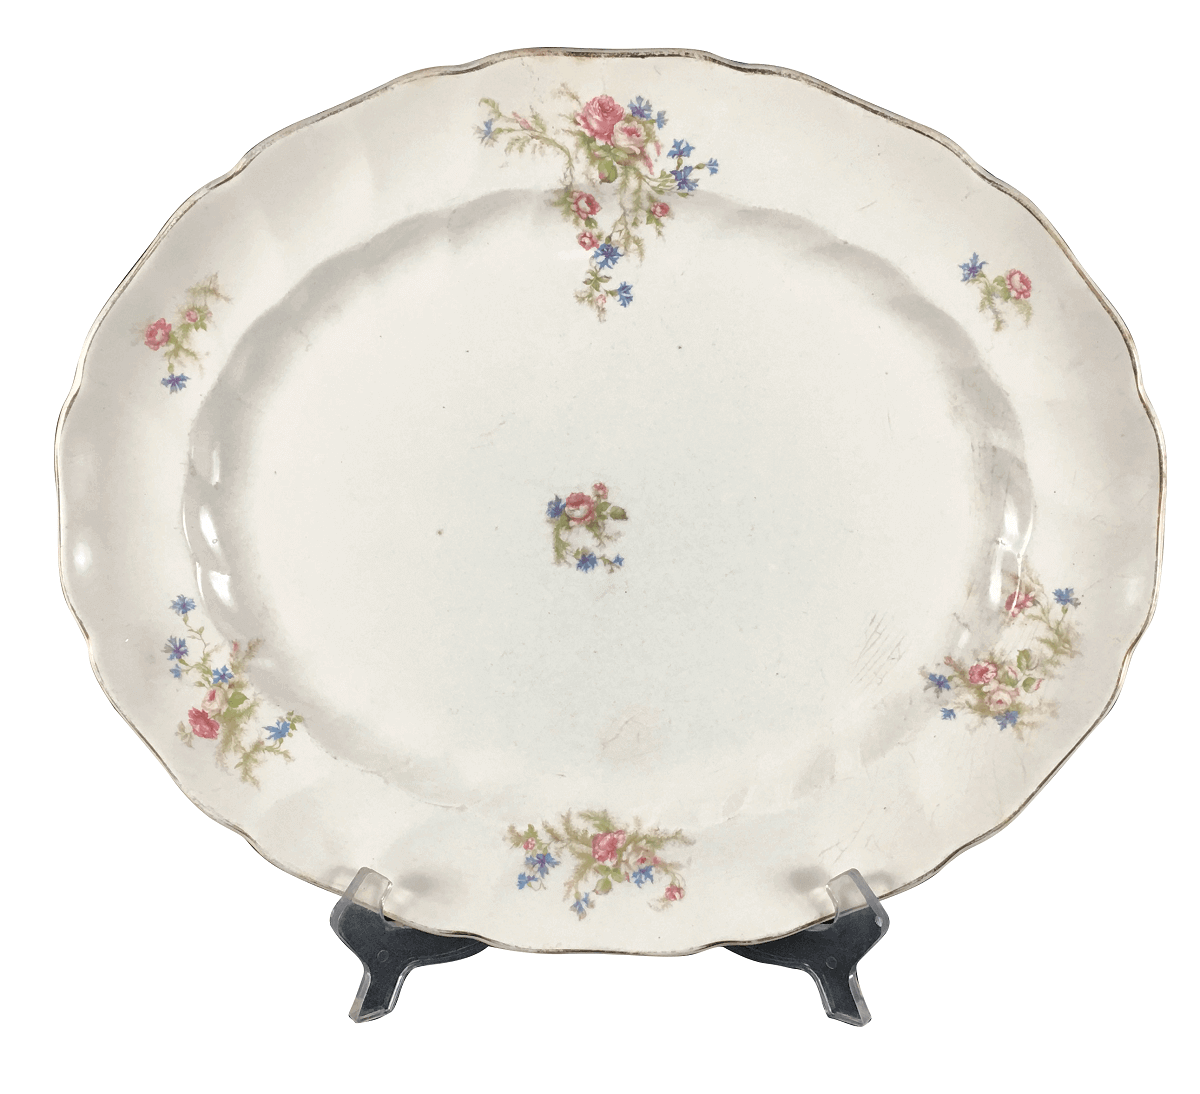 Travessa Porcelana Antiga Inglesa Johnson Bros 35x29cm